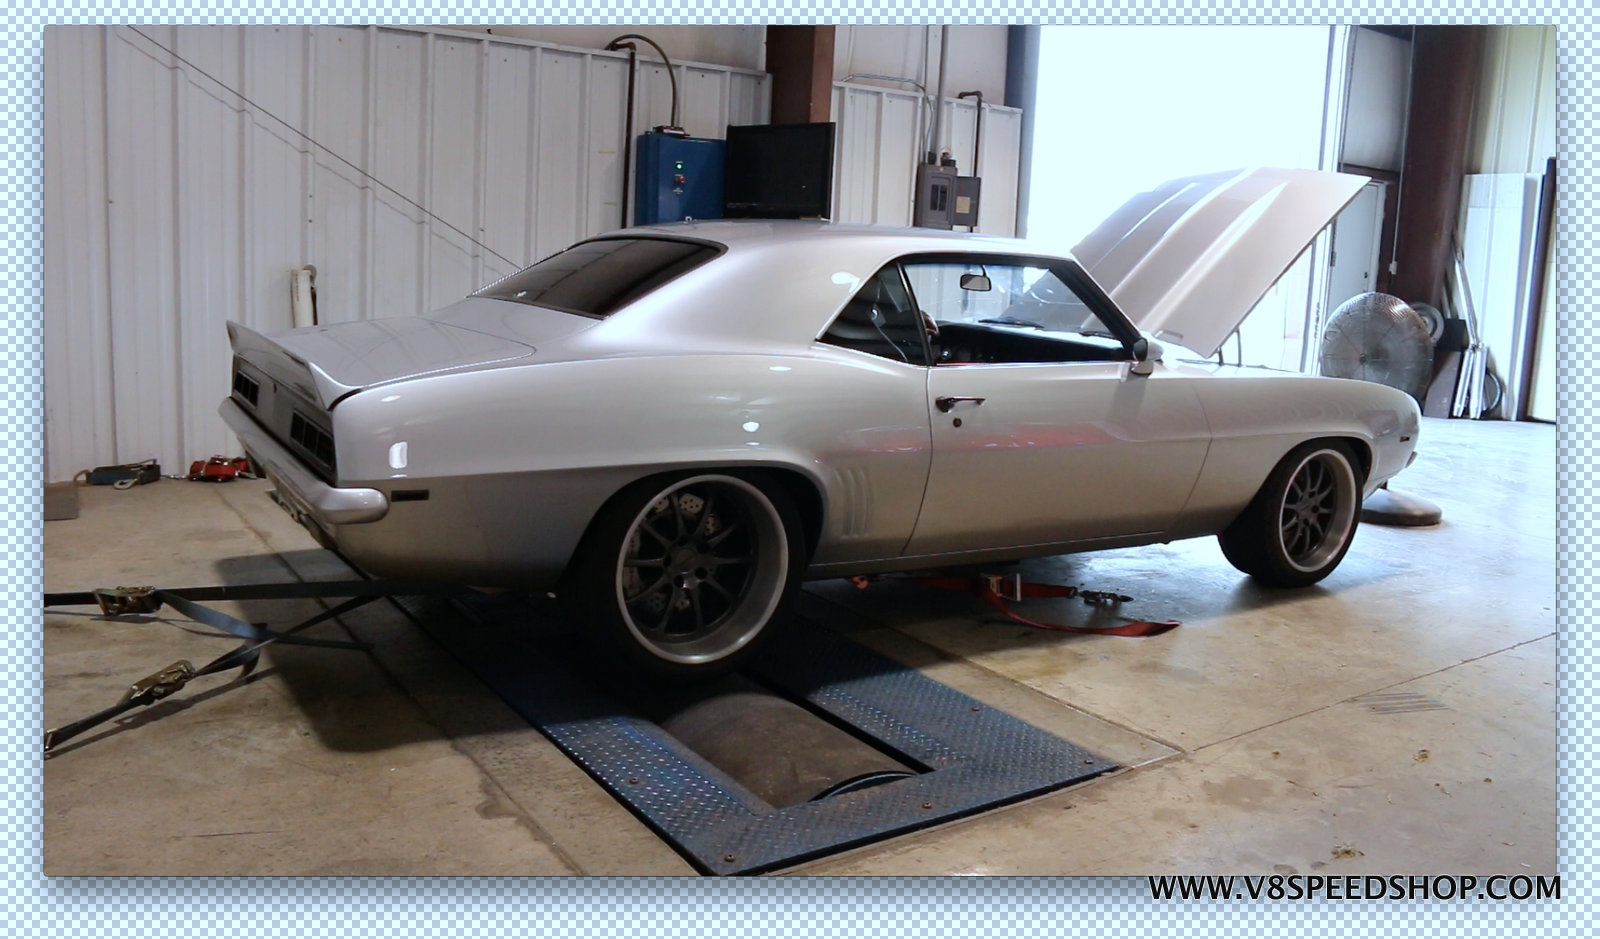 1969 Camaro Transforms From Big Block to Supercharged LT4 V8 at V8 Speed & Resto Shop